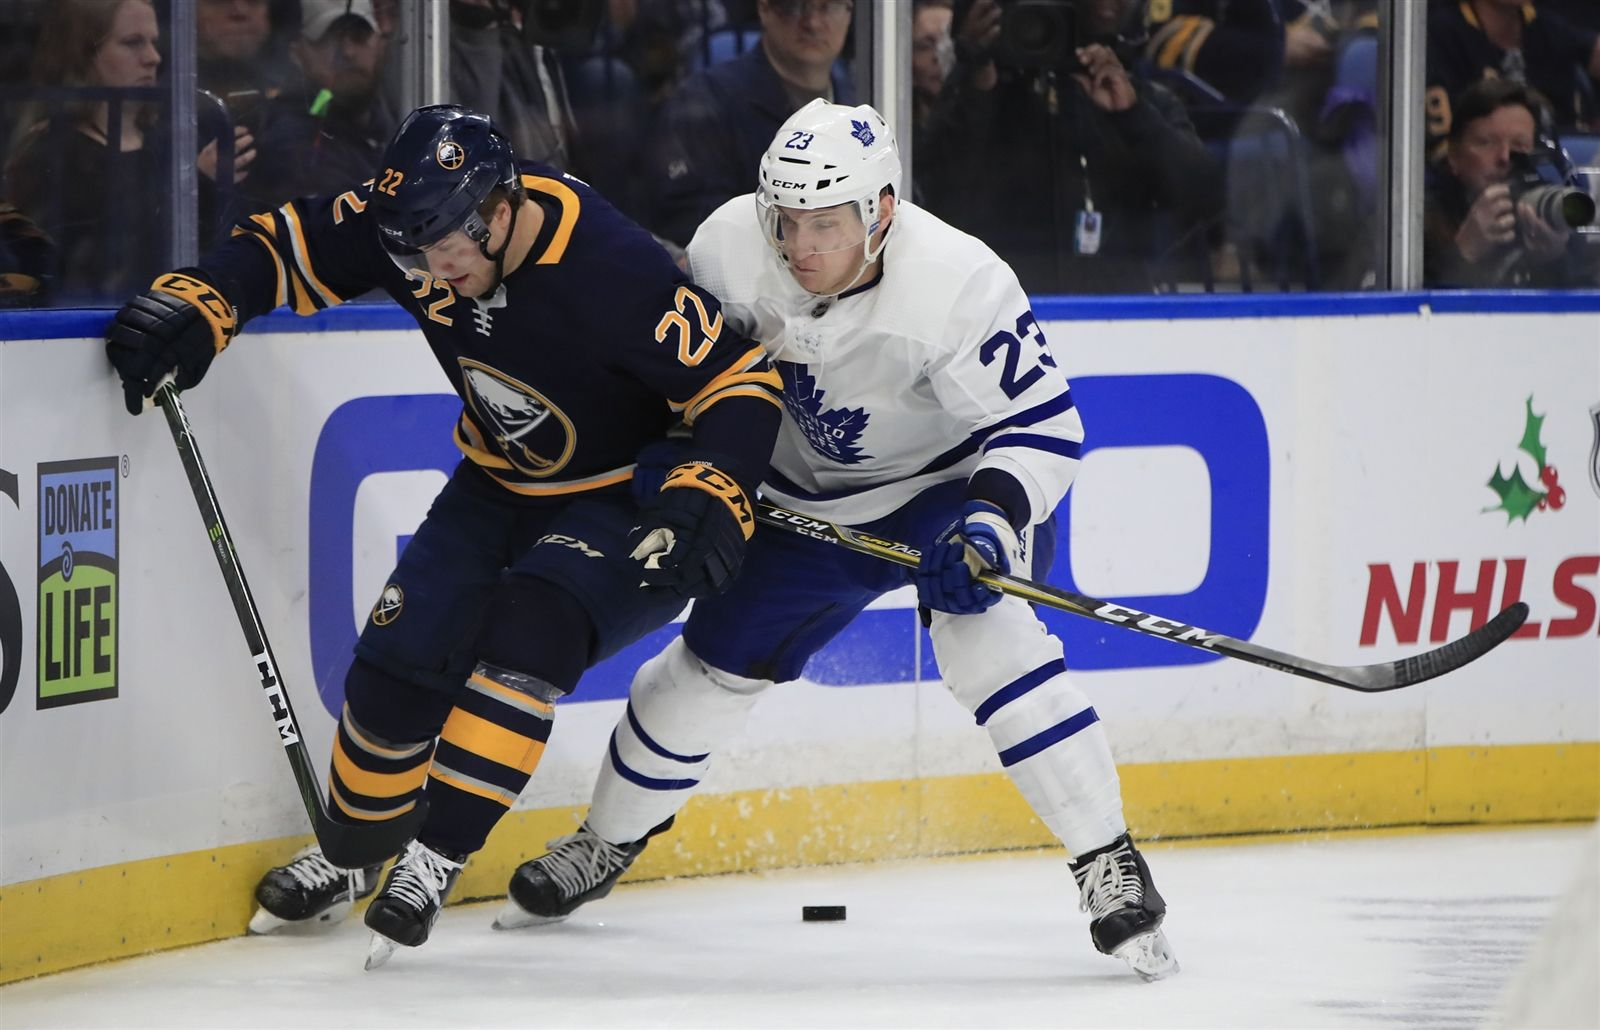 Buffalo Sabres center Johan Larsson and Toronto Maple Leafs Travis Dermott battle for a loose puck during first period action at the KeyBank Center on Tuesday, Dec. 4, 2018.